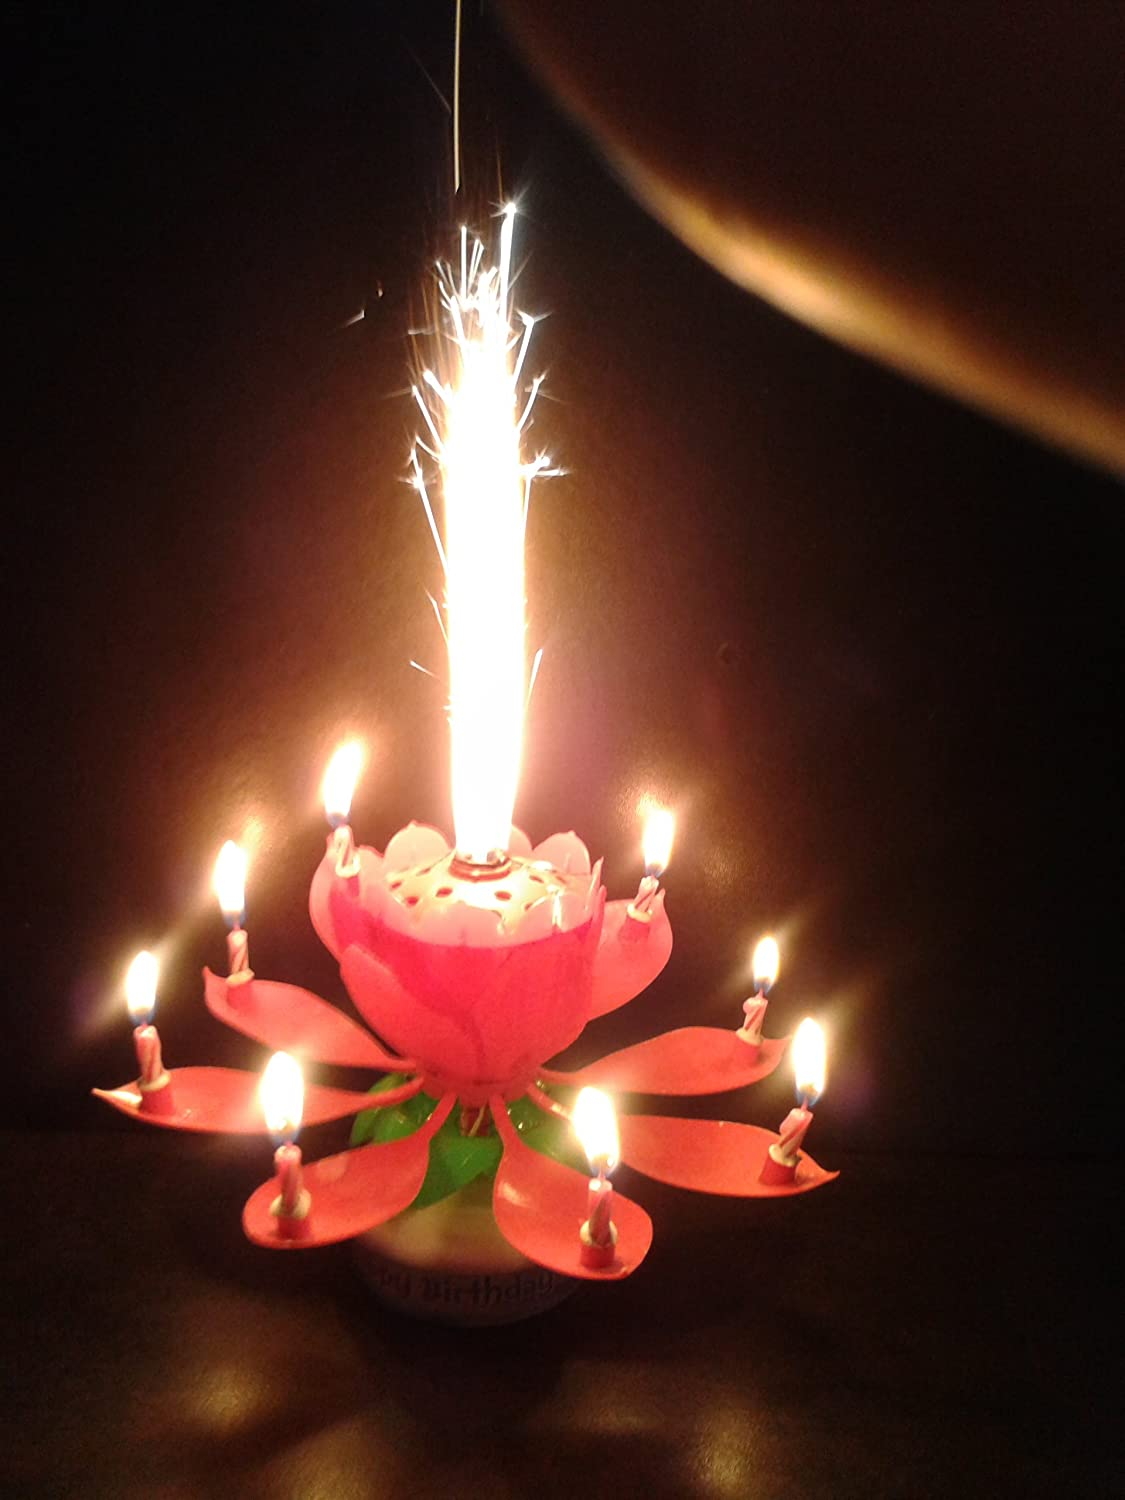 Musical Birthday Cake Candle Sparkler Fountain Flower